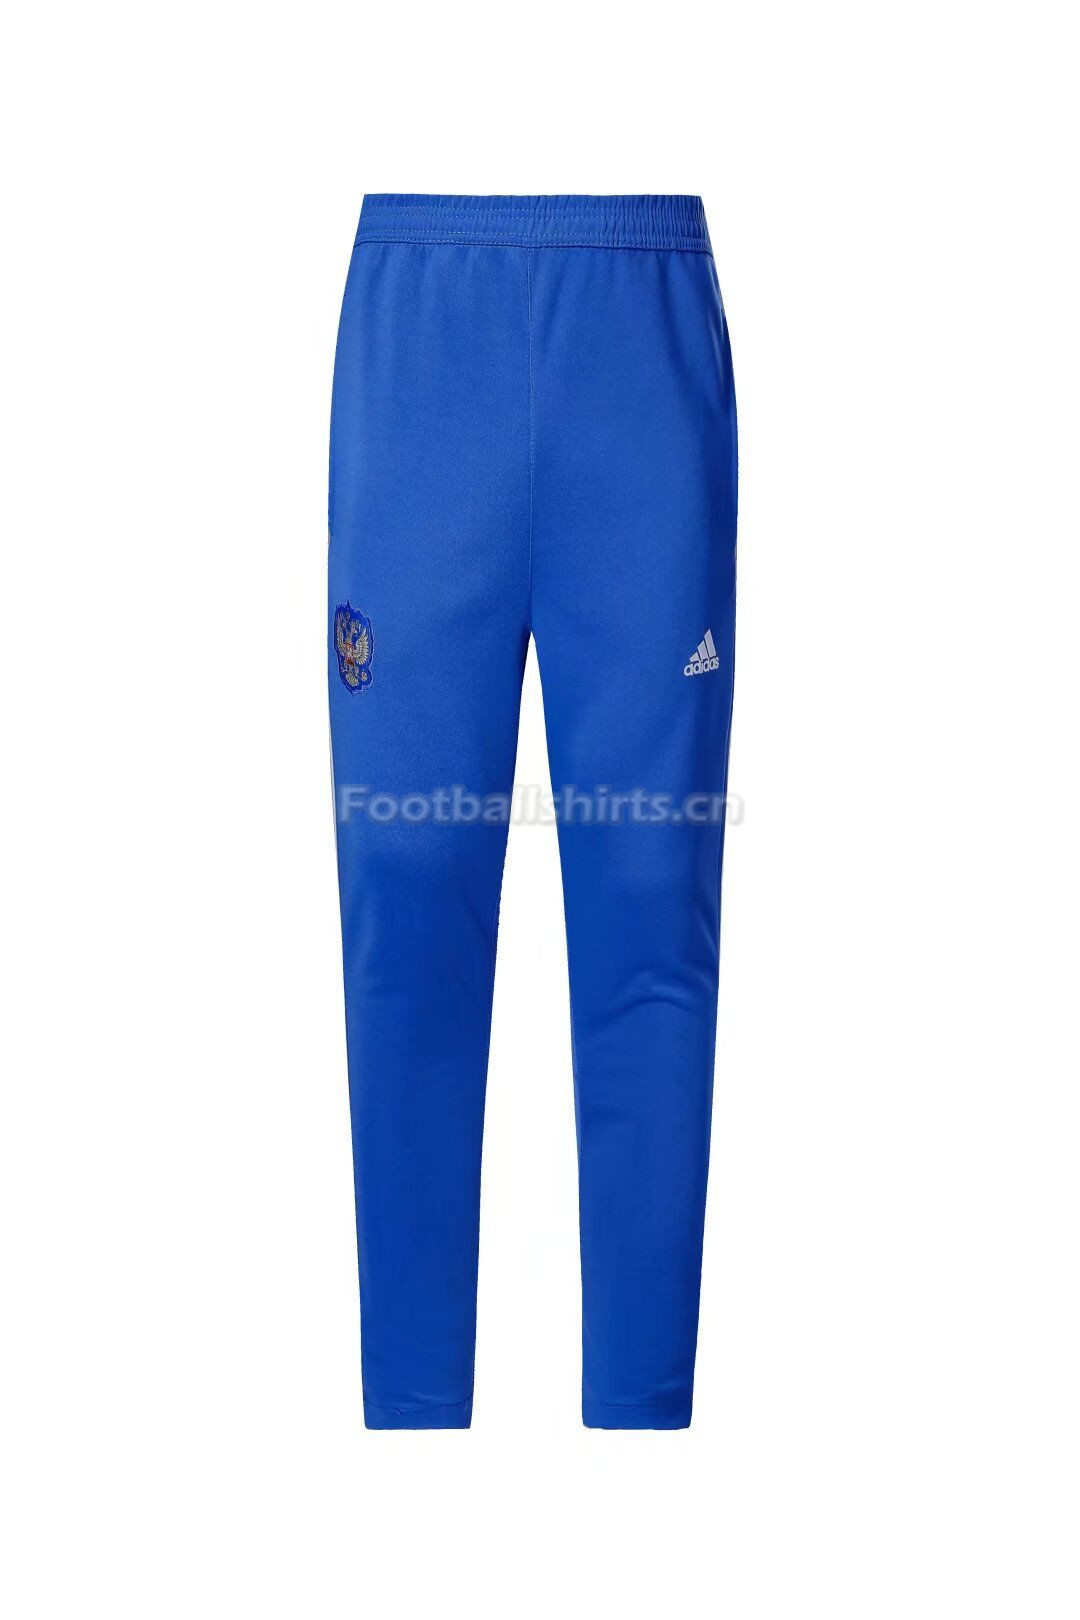 Russia World Cup 2018 Blue Training Pants